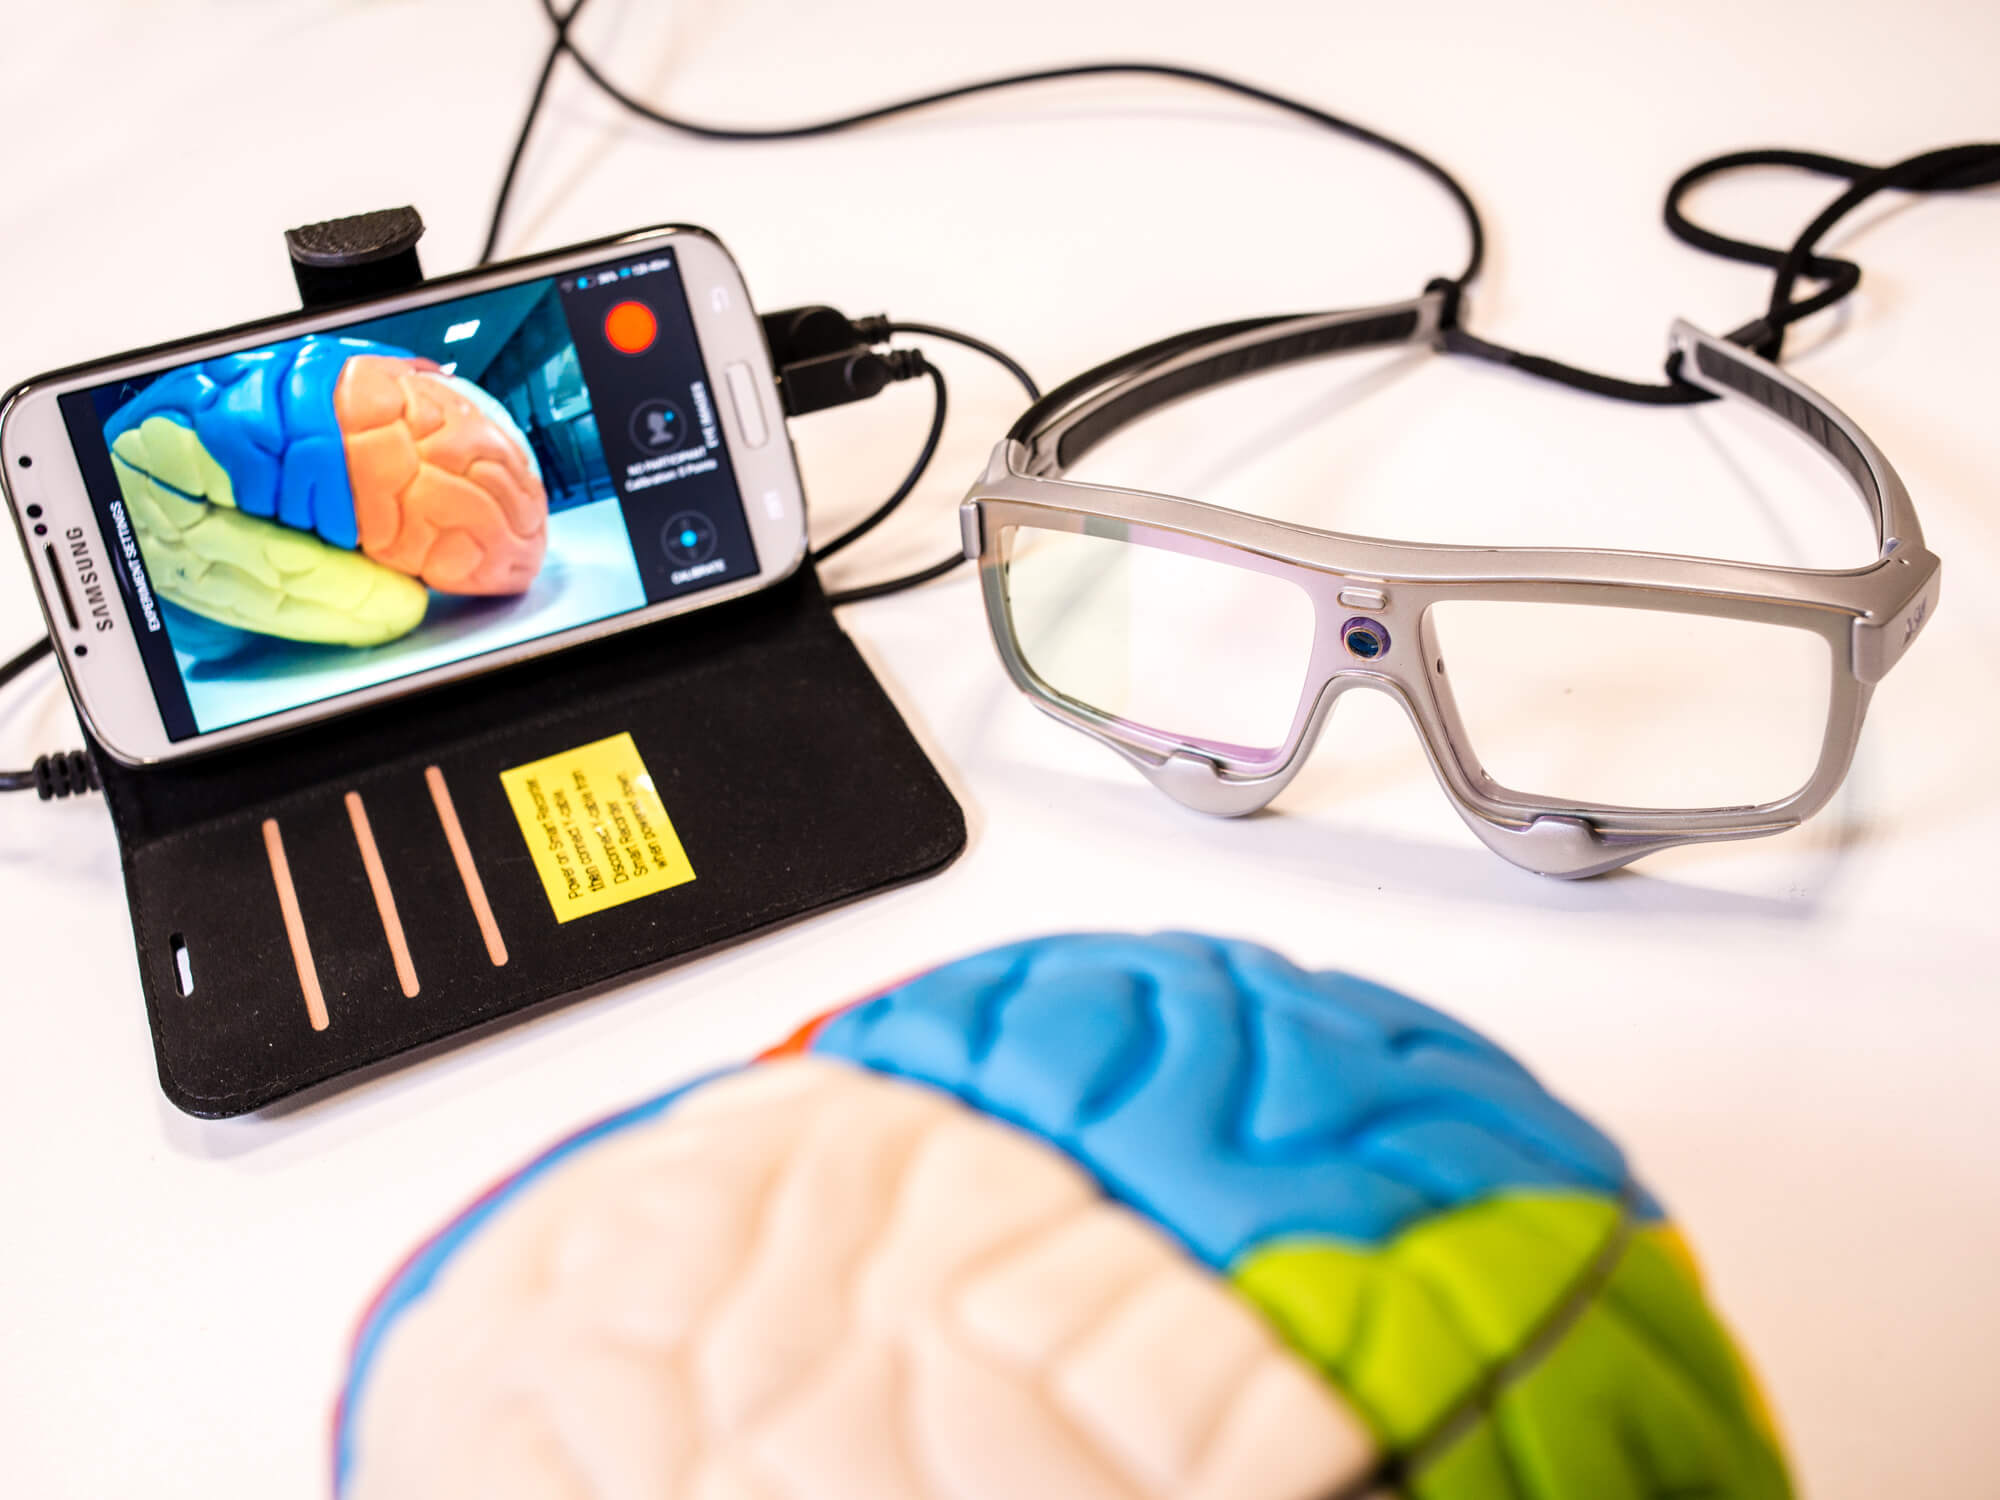 model brain being shown on mobile phone